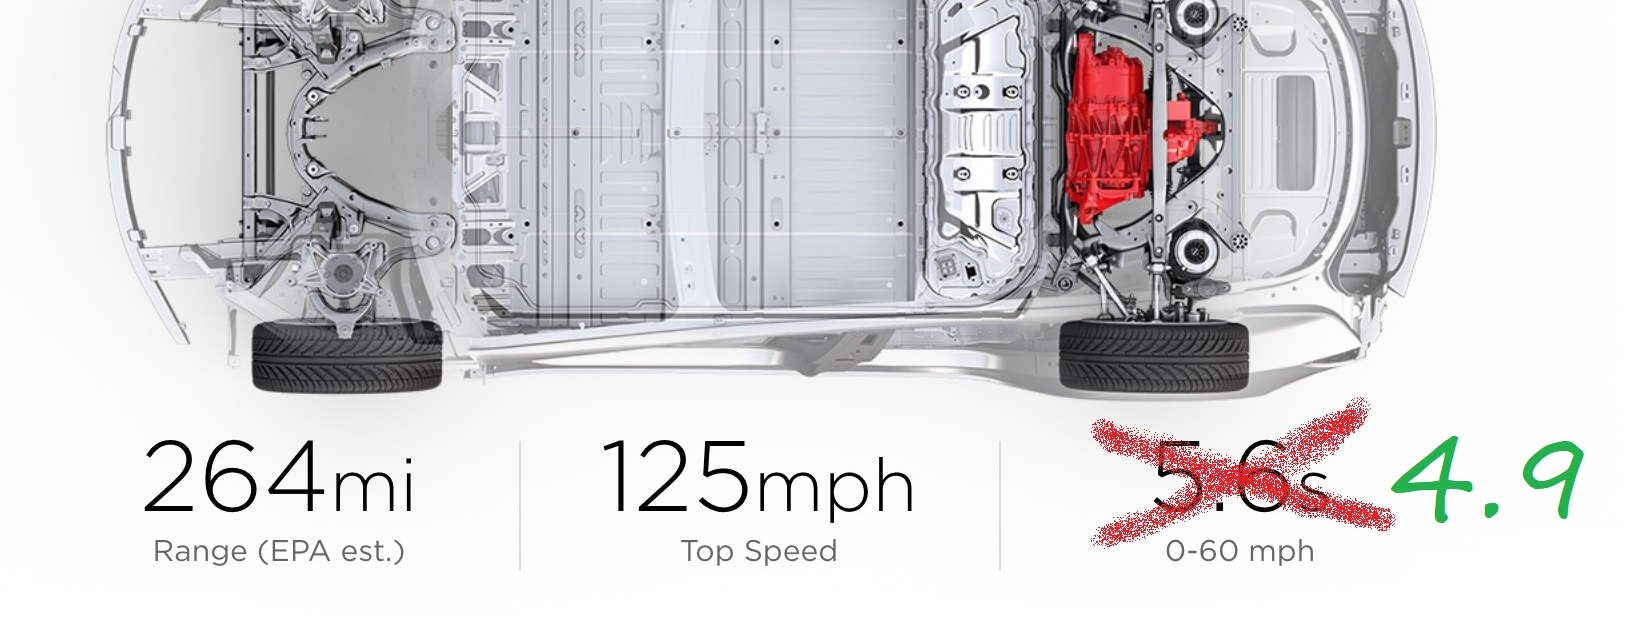 Tesla Model 3 Mid-range now goes 0-60mph in 4.9s, down from 5.6 at launch - Electrek